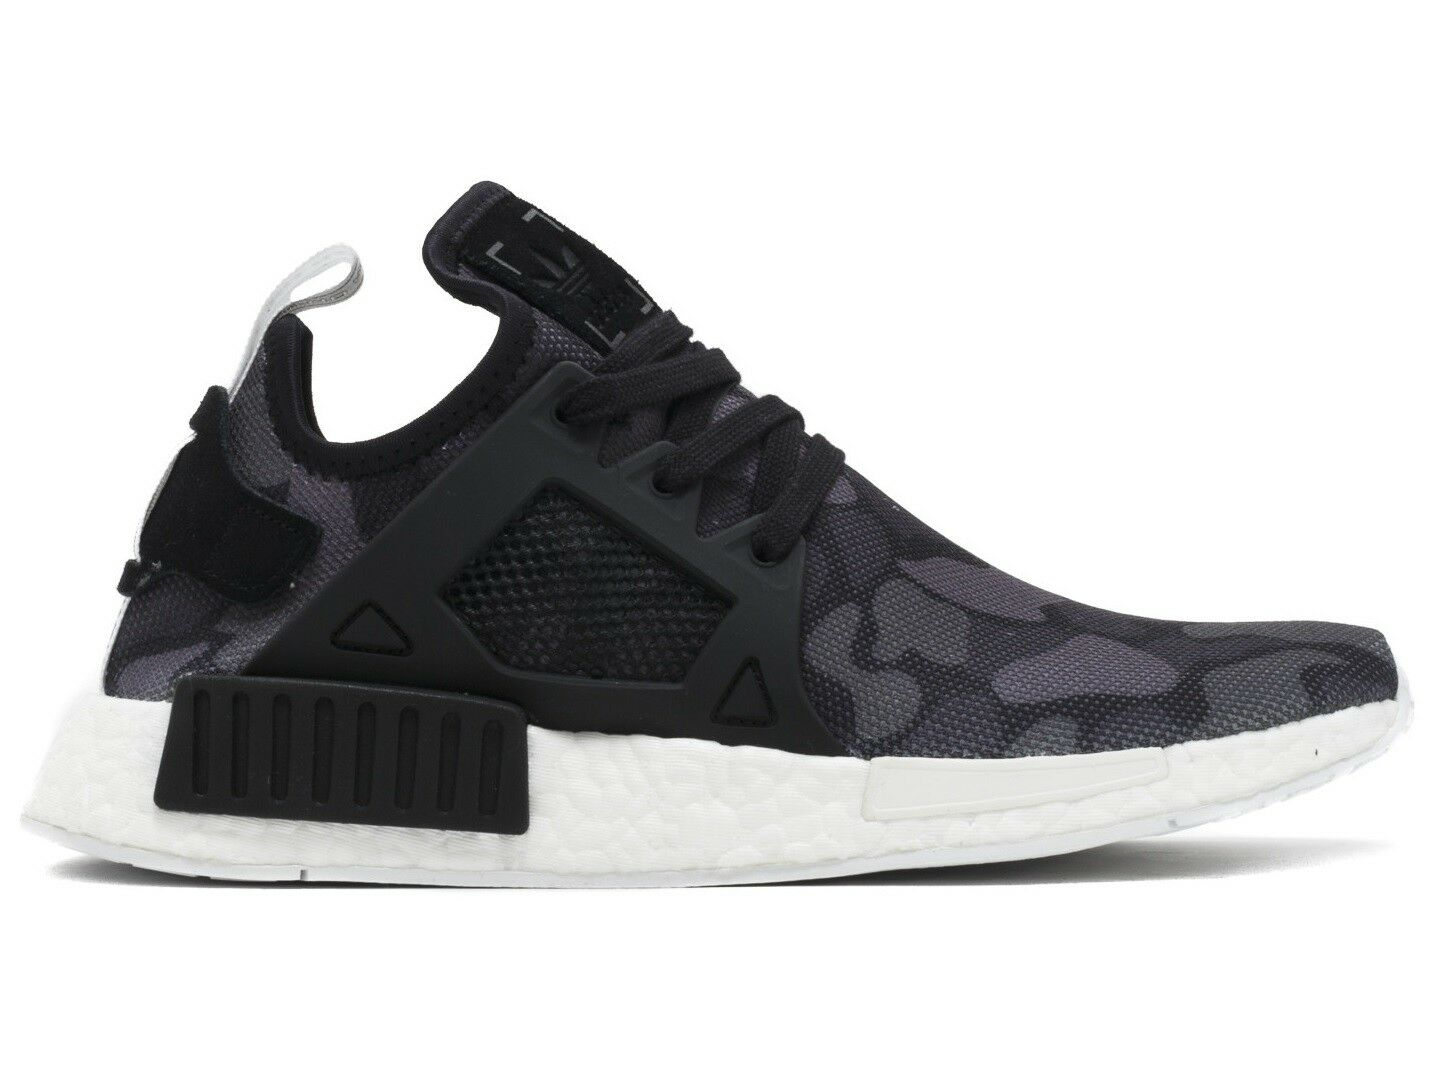 Adidas NMD XR1 Duck Camo Mens BA7231 Black White Boost Running Shoes Comfortable